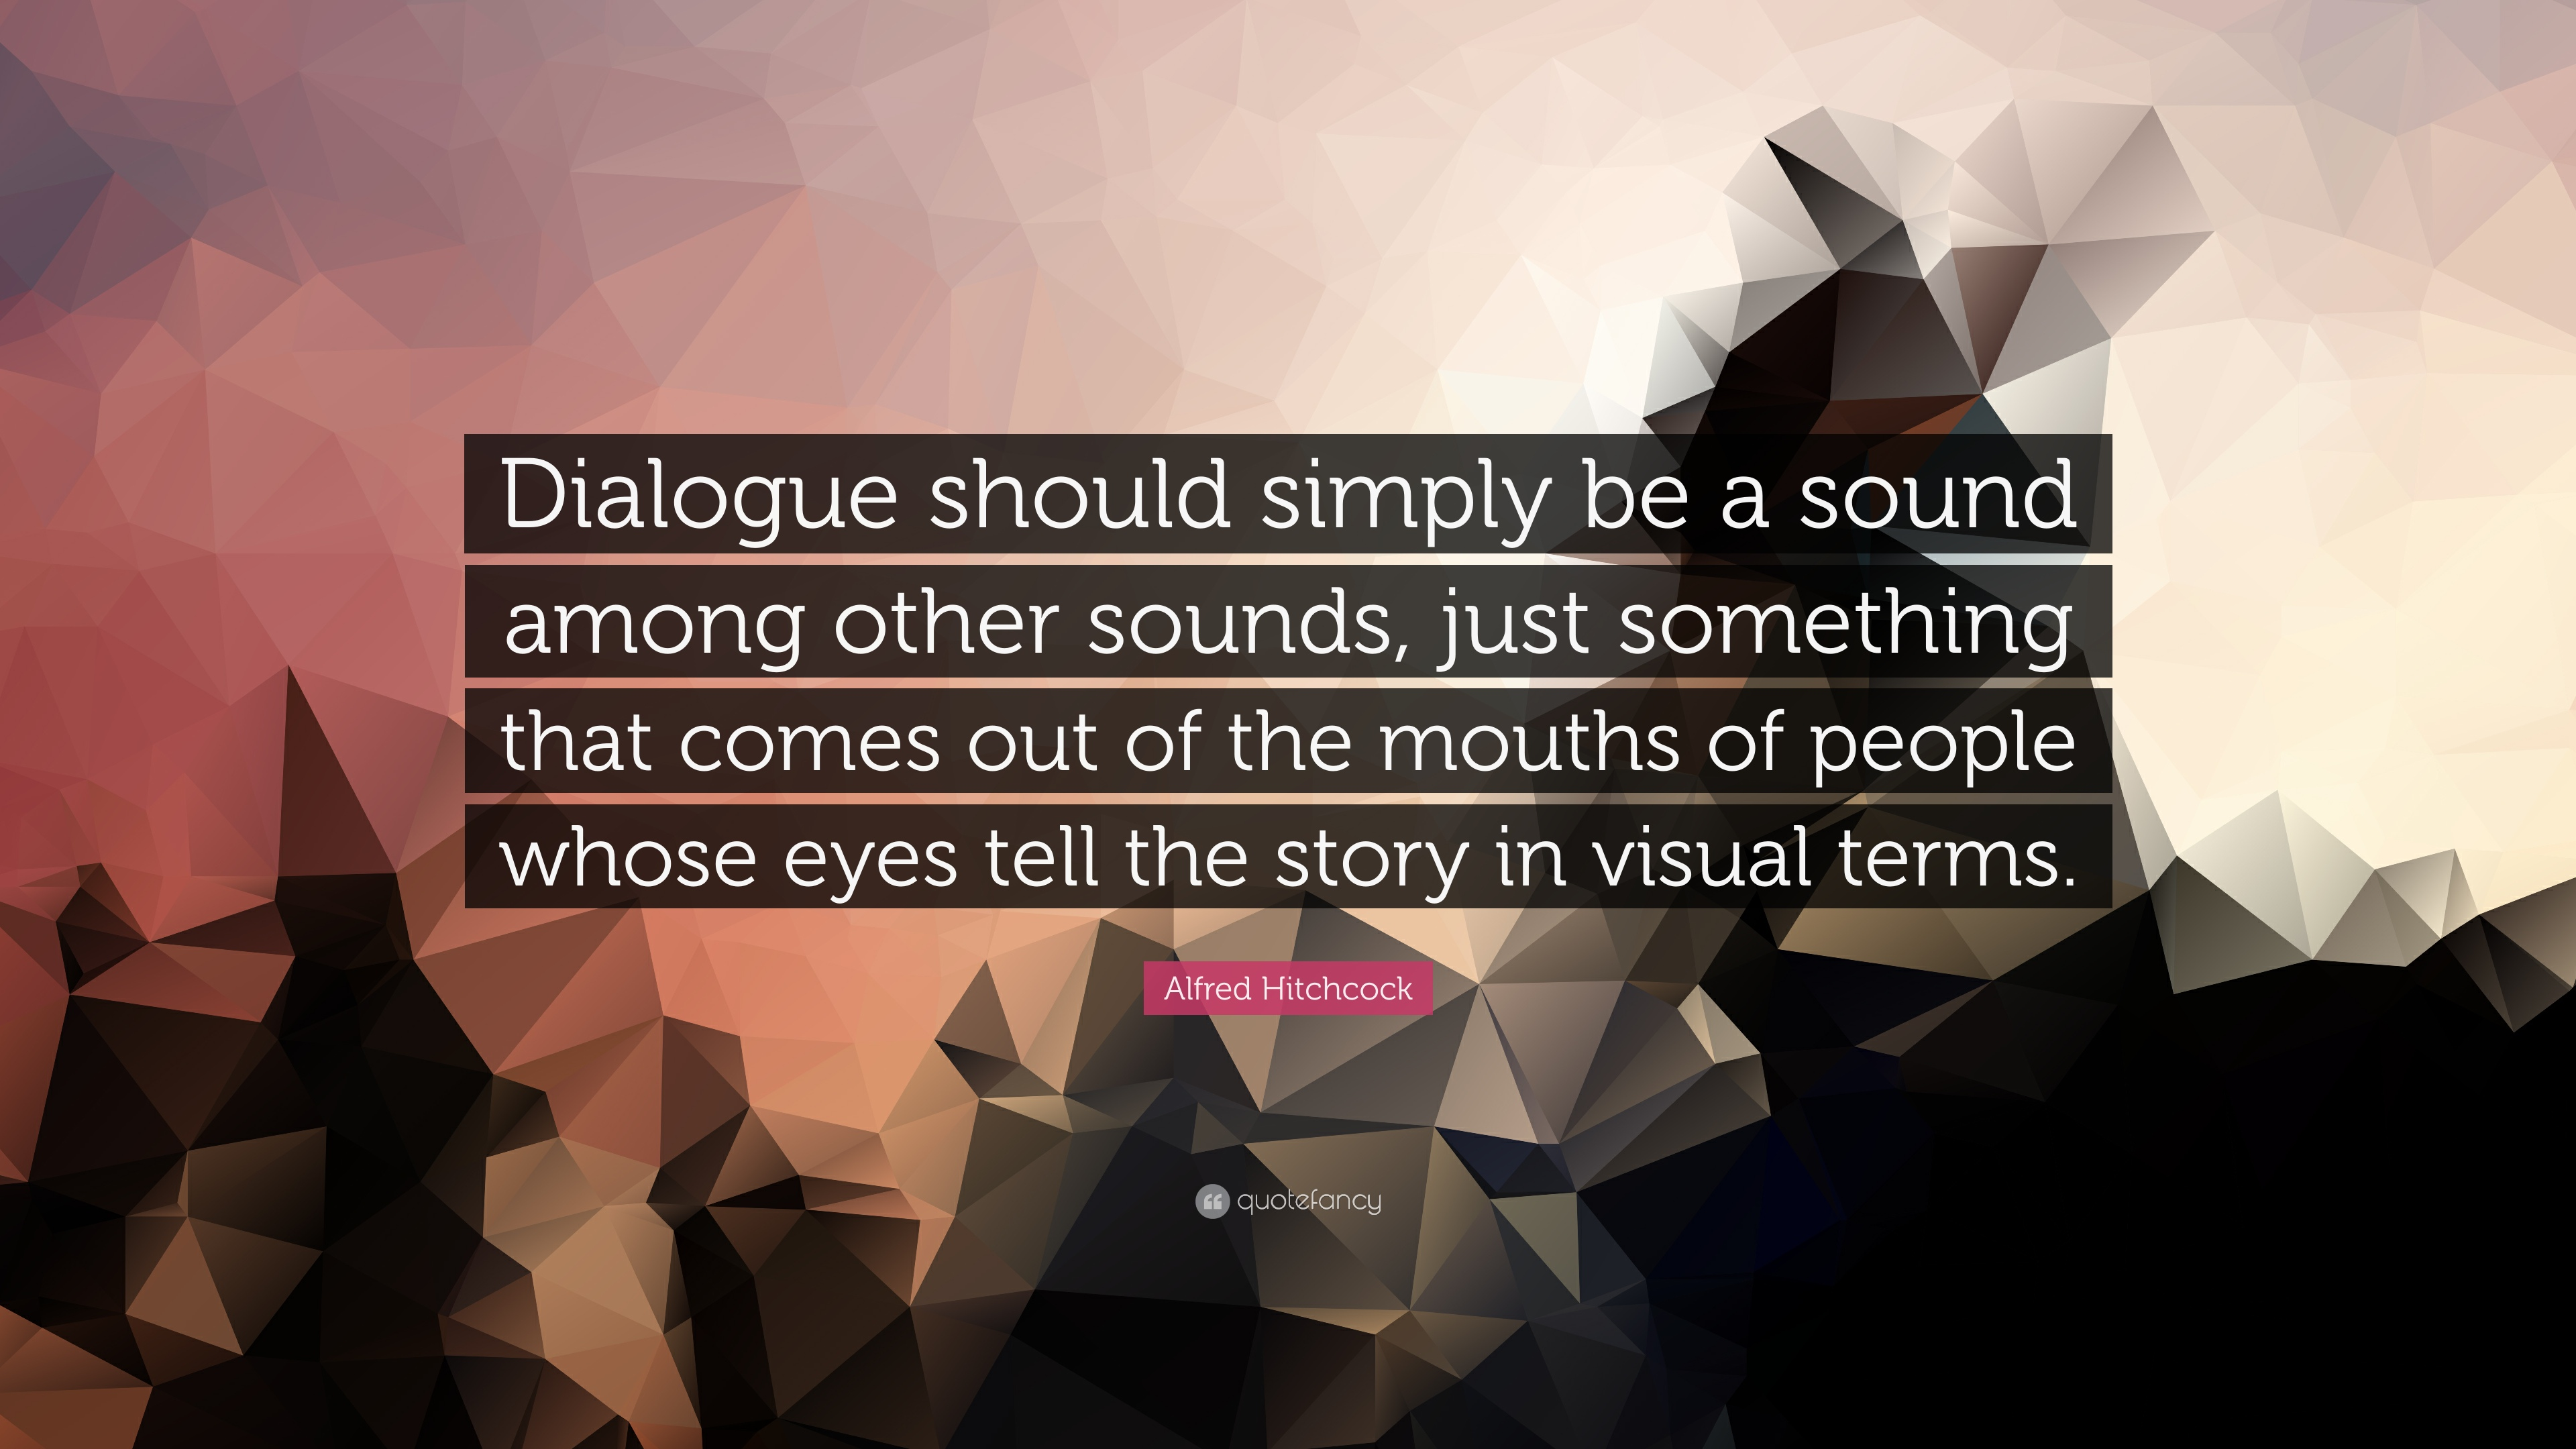 how to quote dialogue in a story